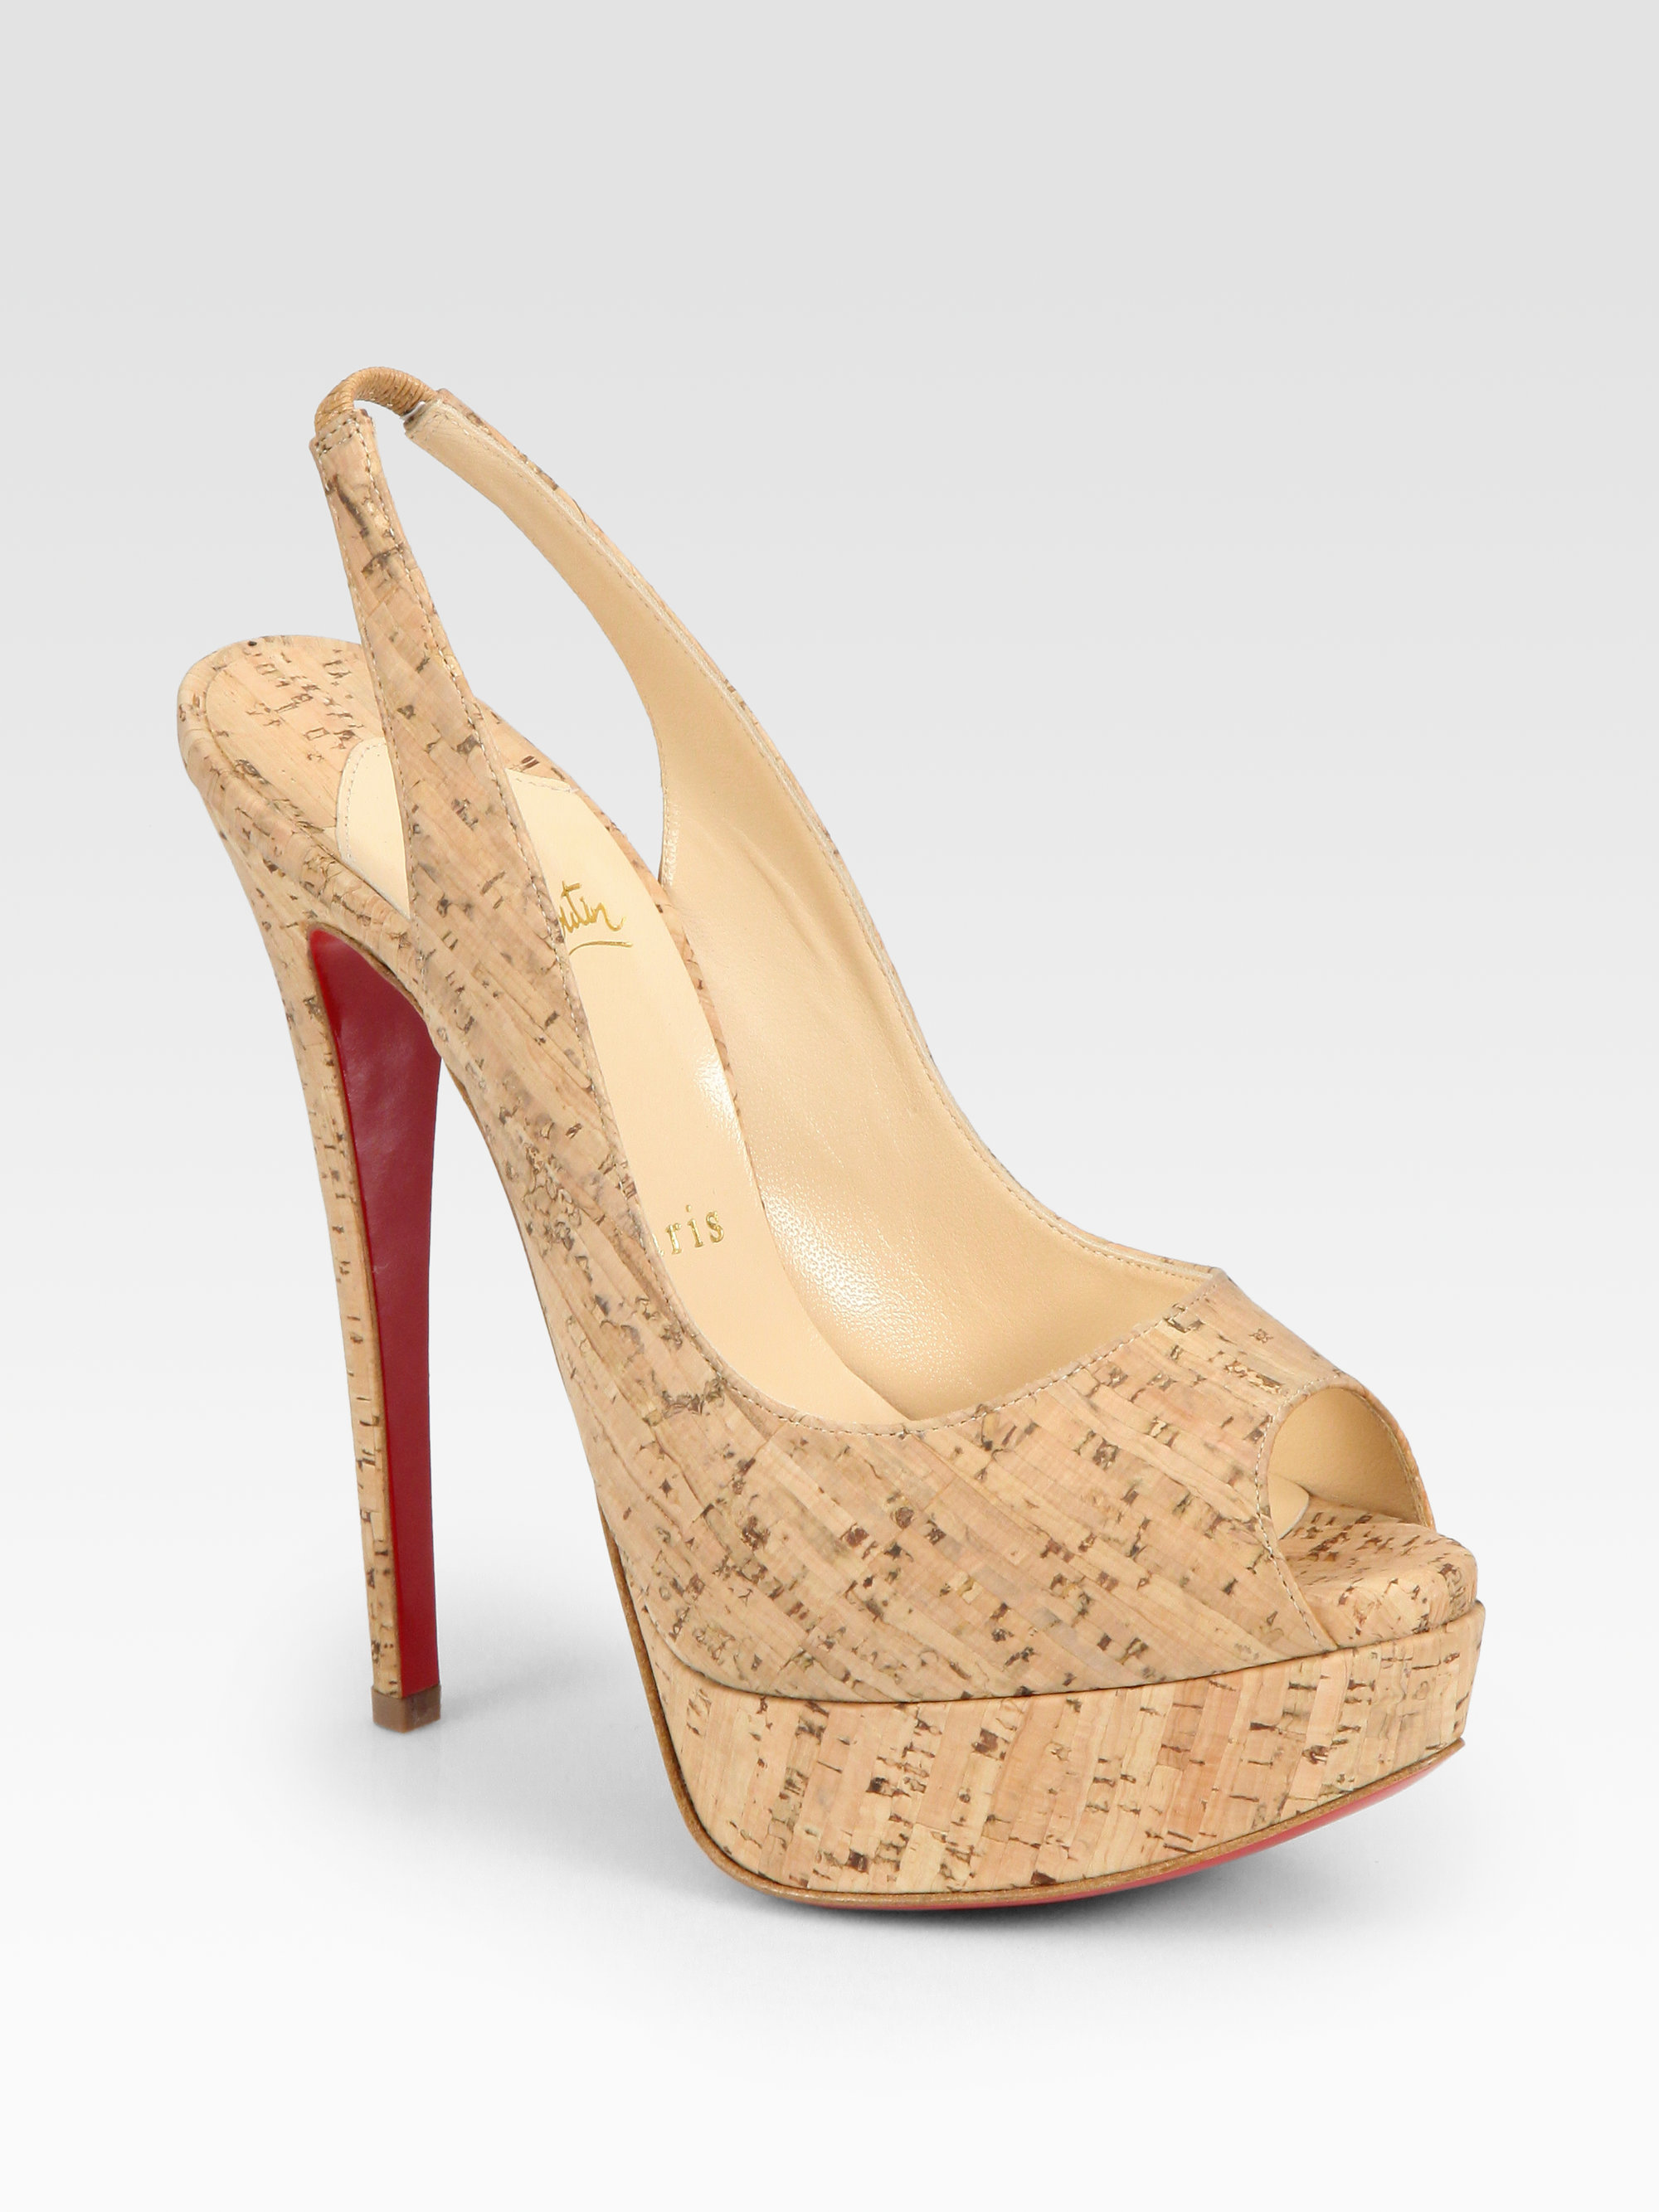 christian louboutin louis vuitton - christian-louboutin-cork-lady-cork-peep-toe-slingback-platform-pumps-product-1-8230898-723062907.jpeg